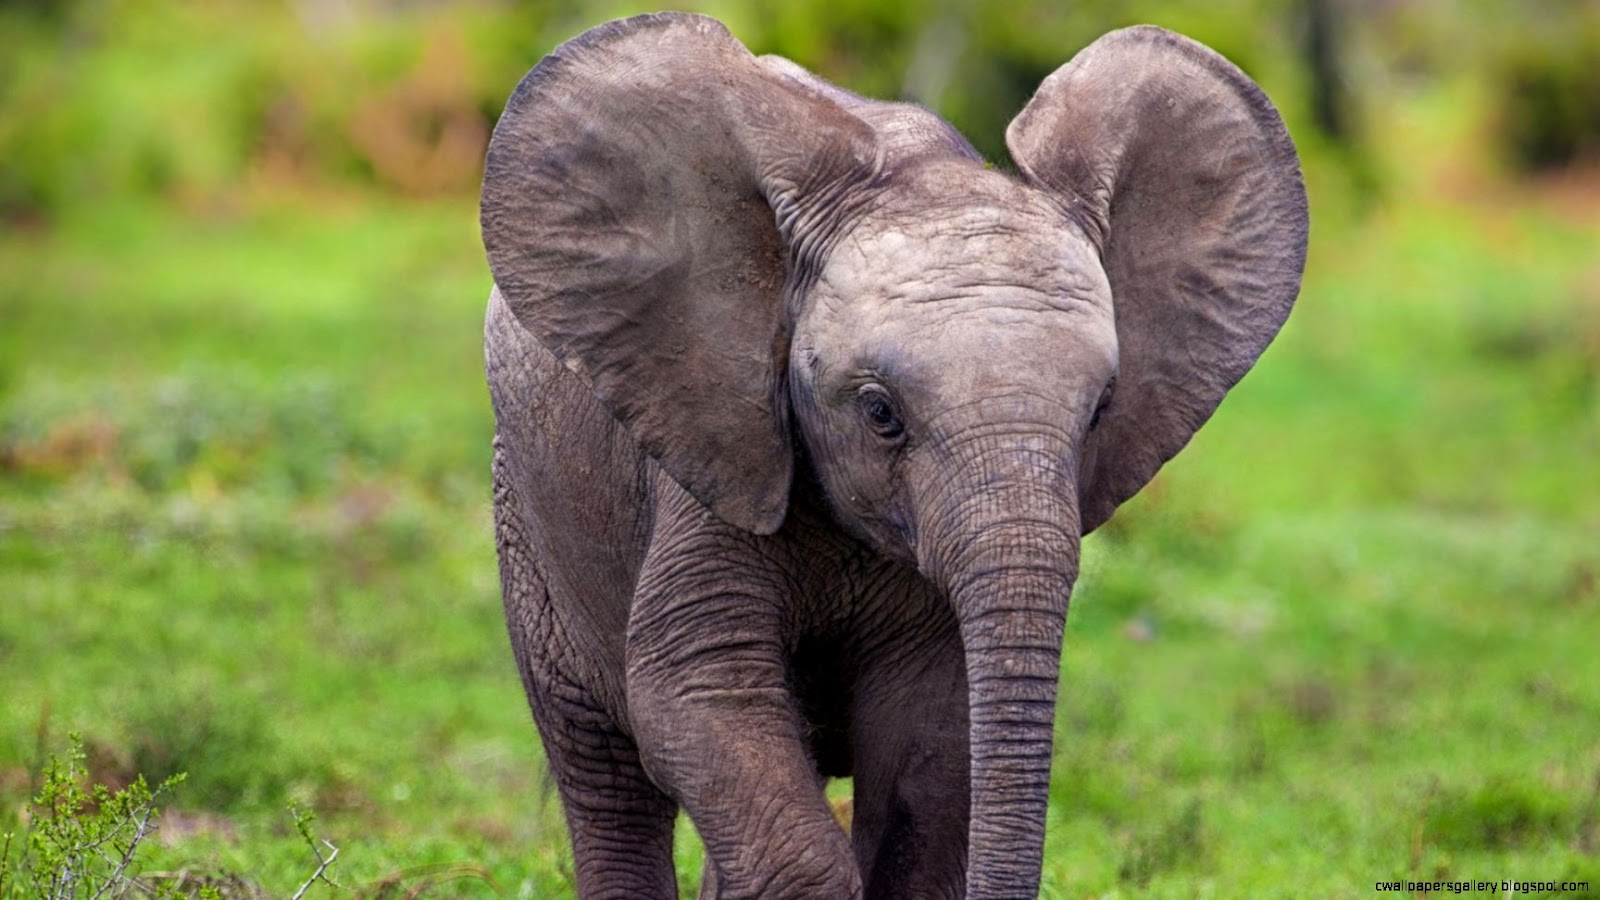 Baby Elephant Wallpaper For Iphone | Wallpapers Gallery